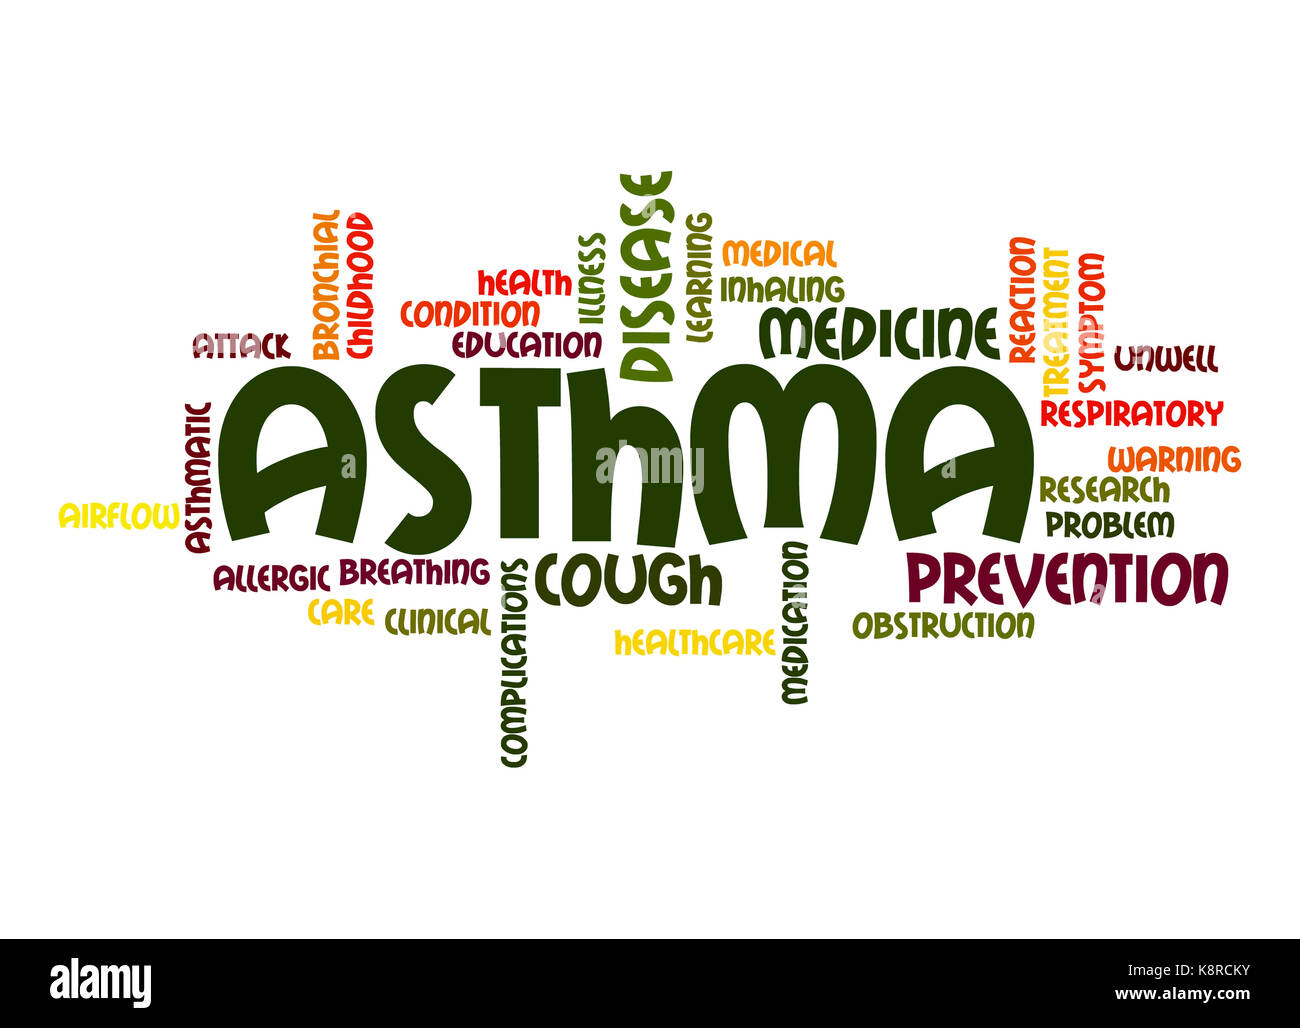 Asthma word cloud - Stock Image